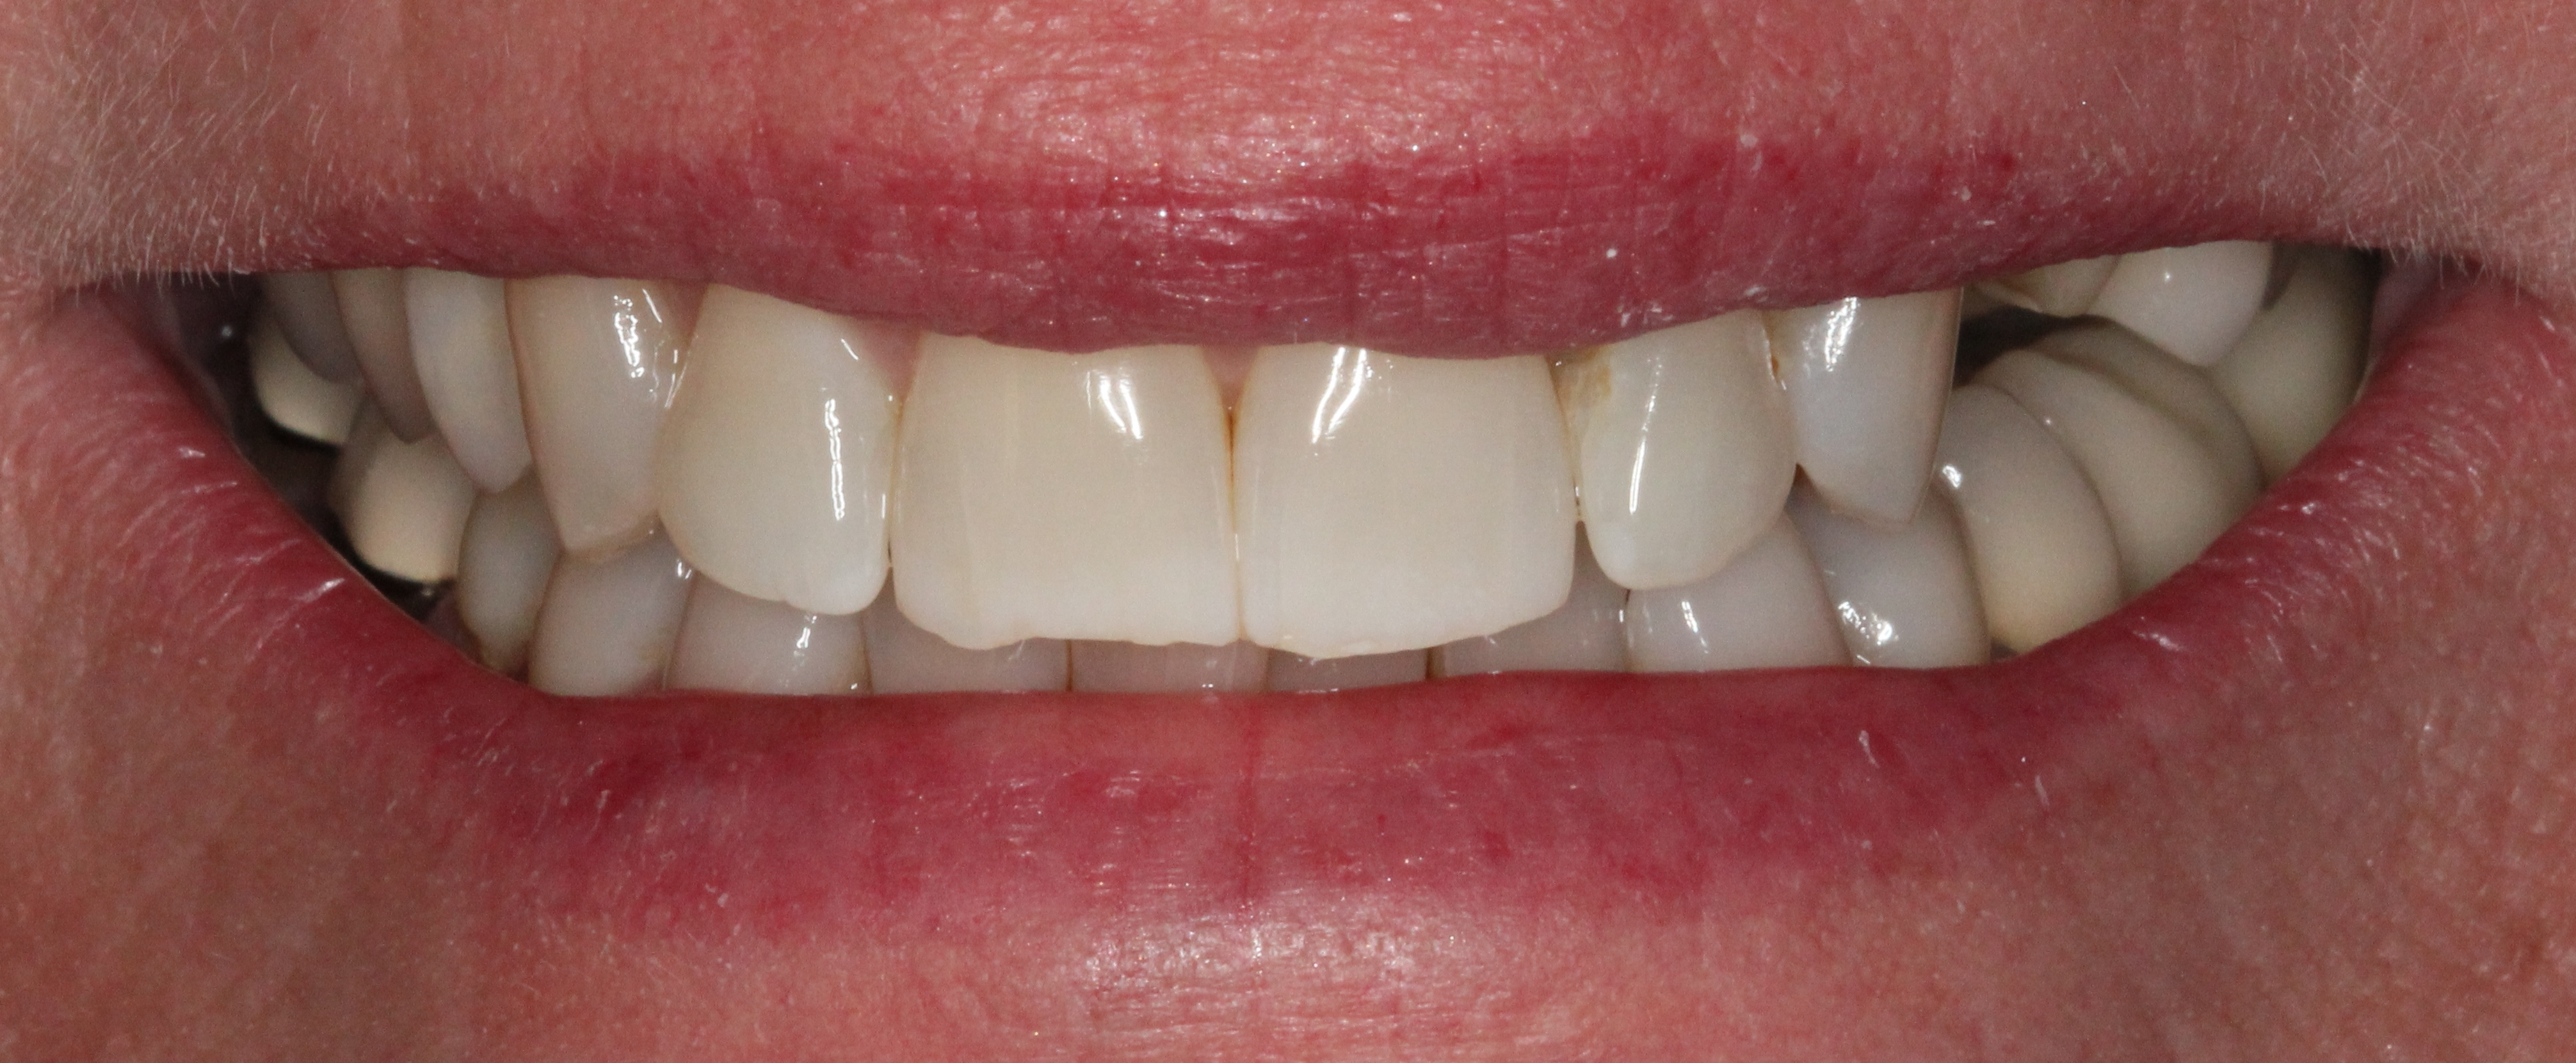 dental images 01907